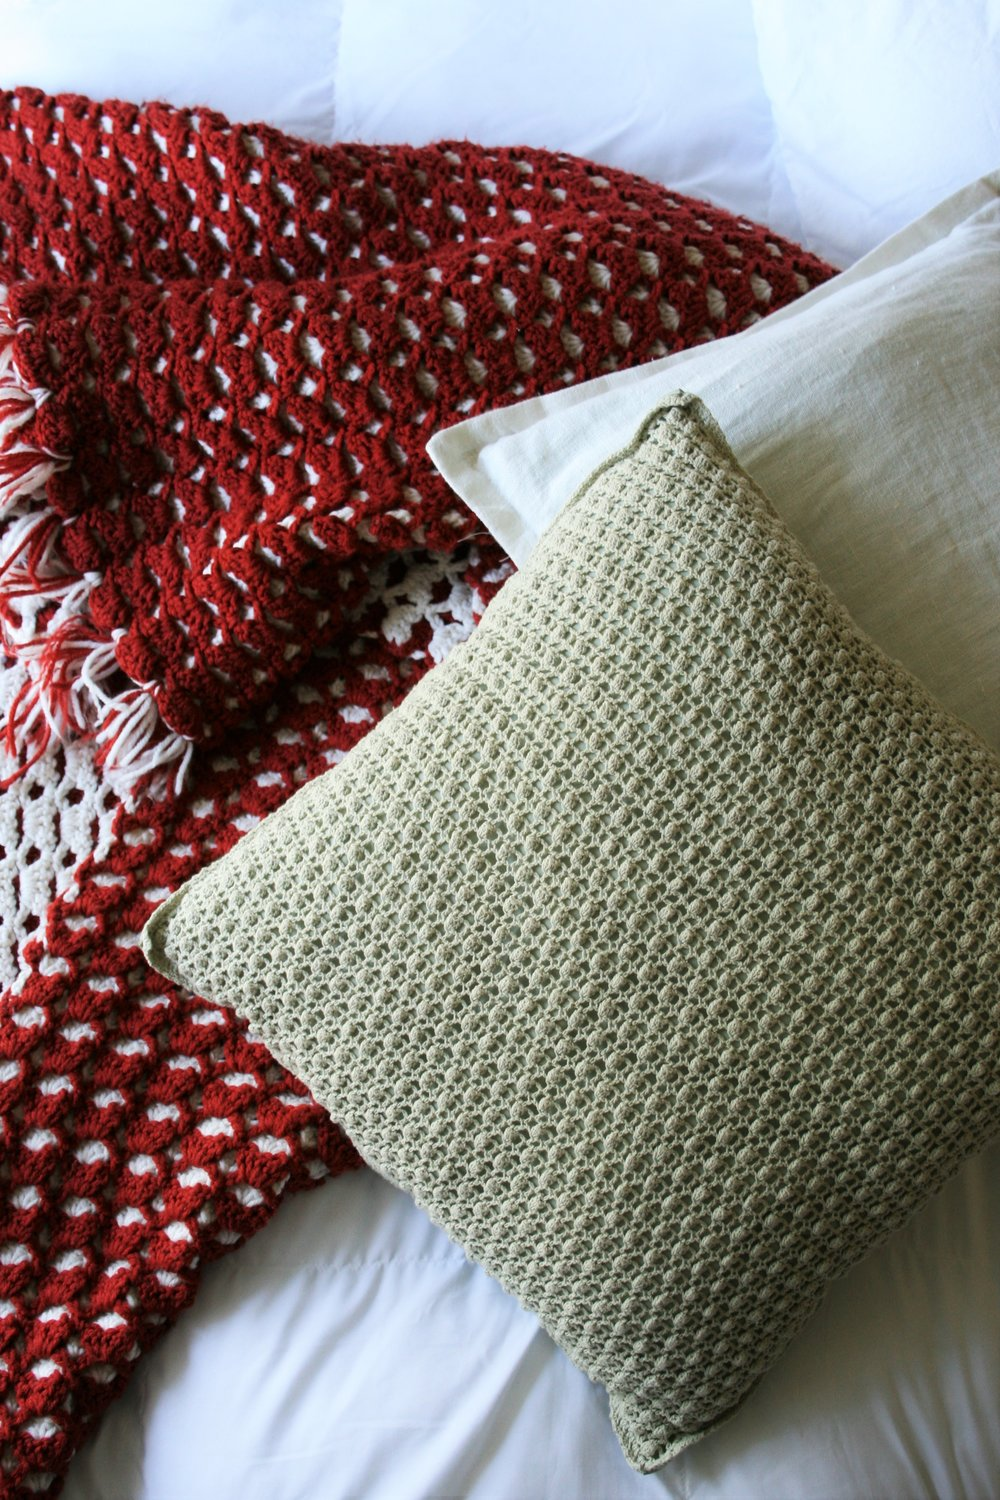 cozy blanket and textured pillows